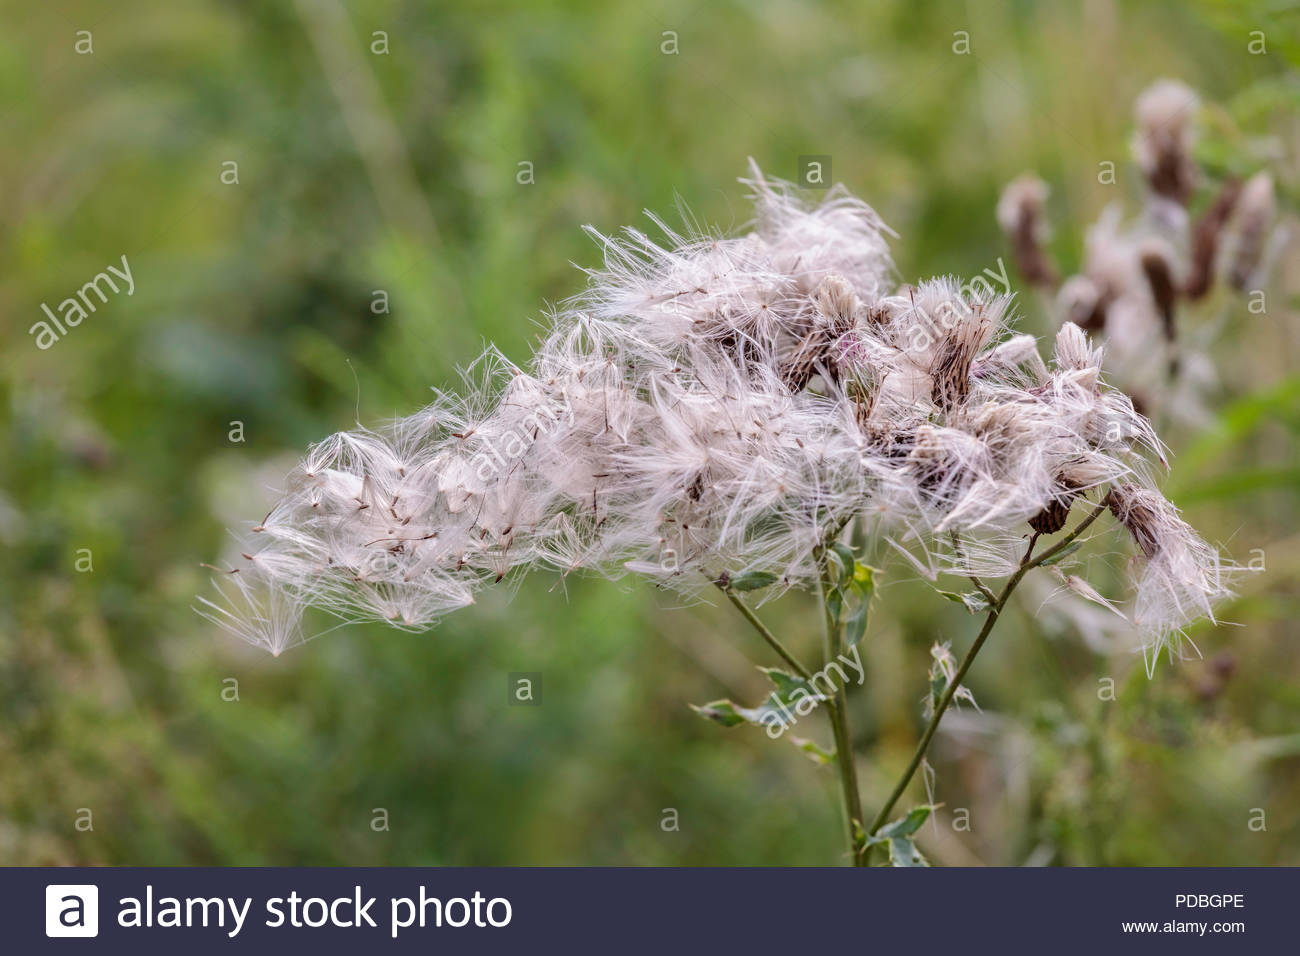 Windblown pappus of Cirsium arvense creeping thistle Canada thistle in Lynde Shores Conservation area in Whitby Ontario Canada - Stock Image